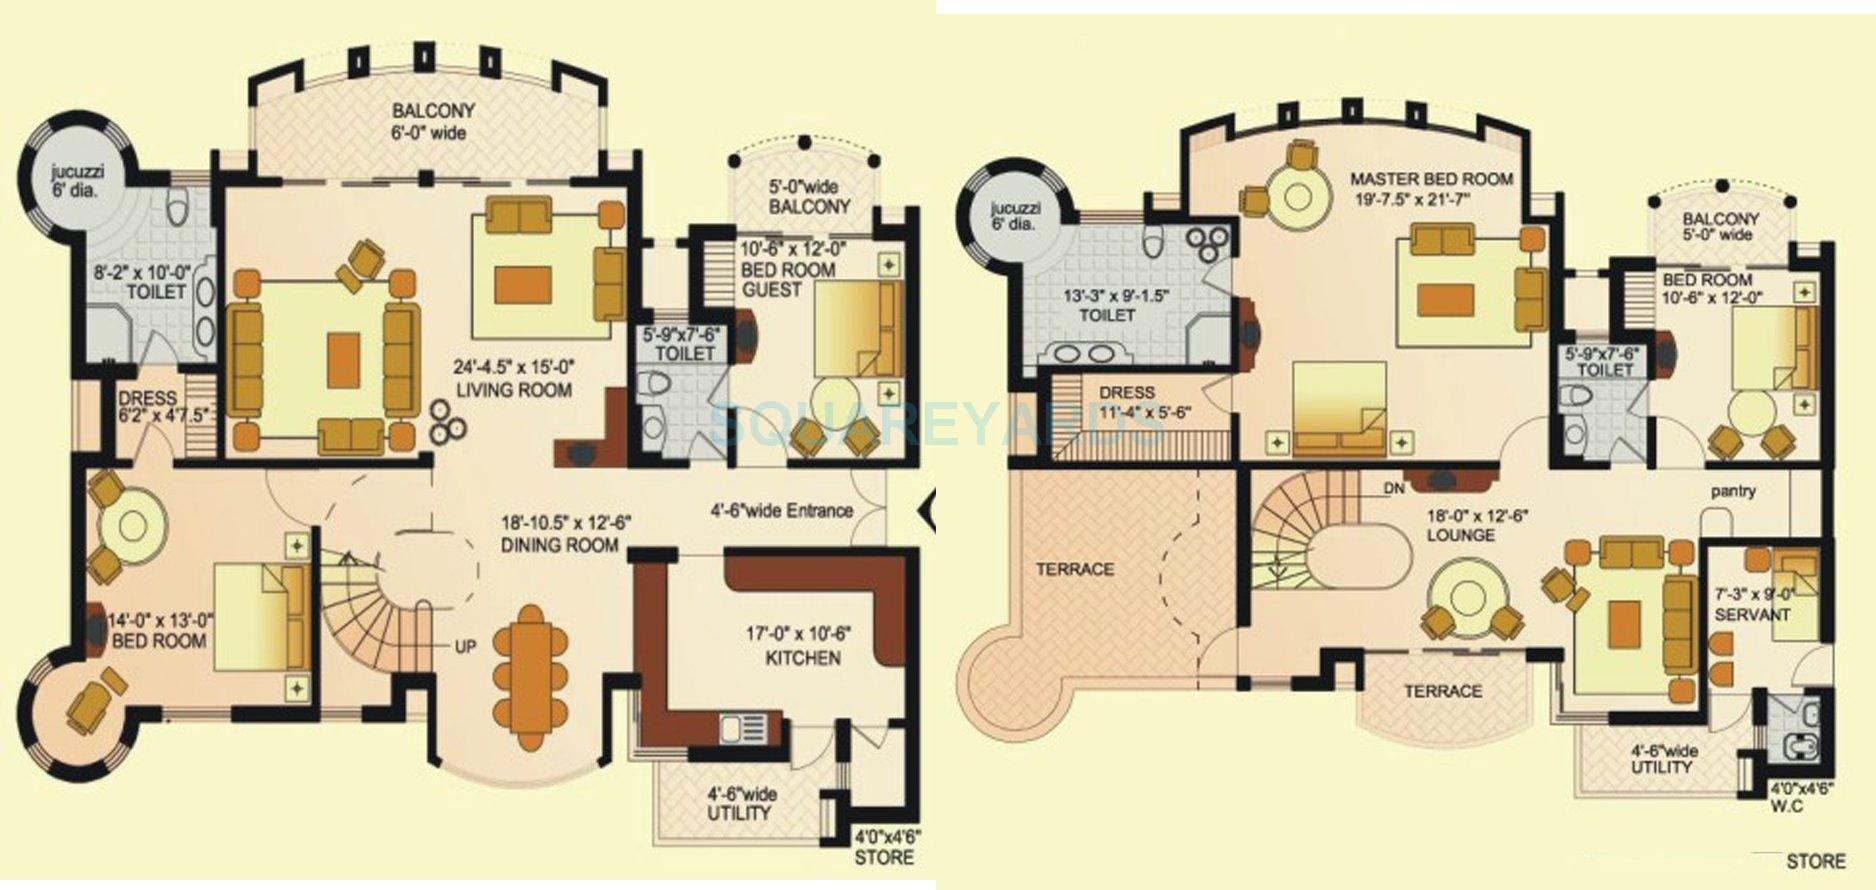 73 10000 Sq Ft House Plans 26 Best 400 Sq Ft